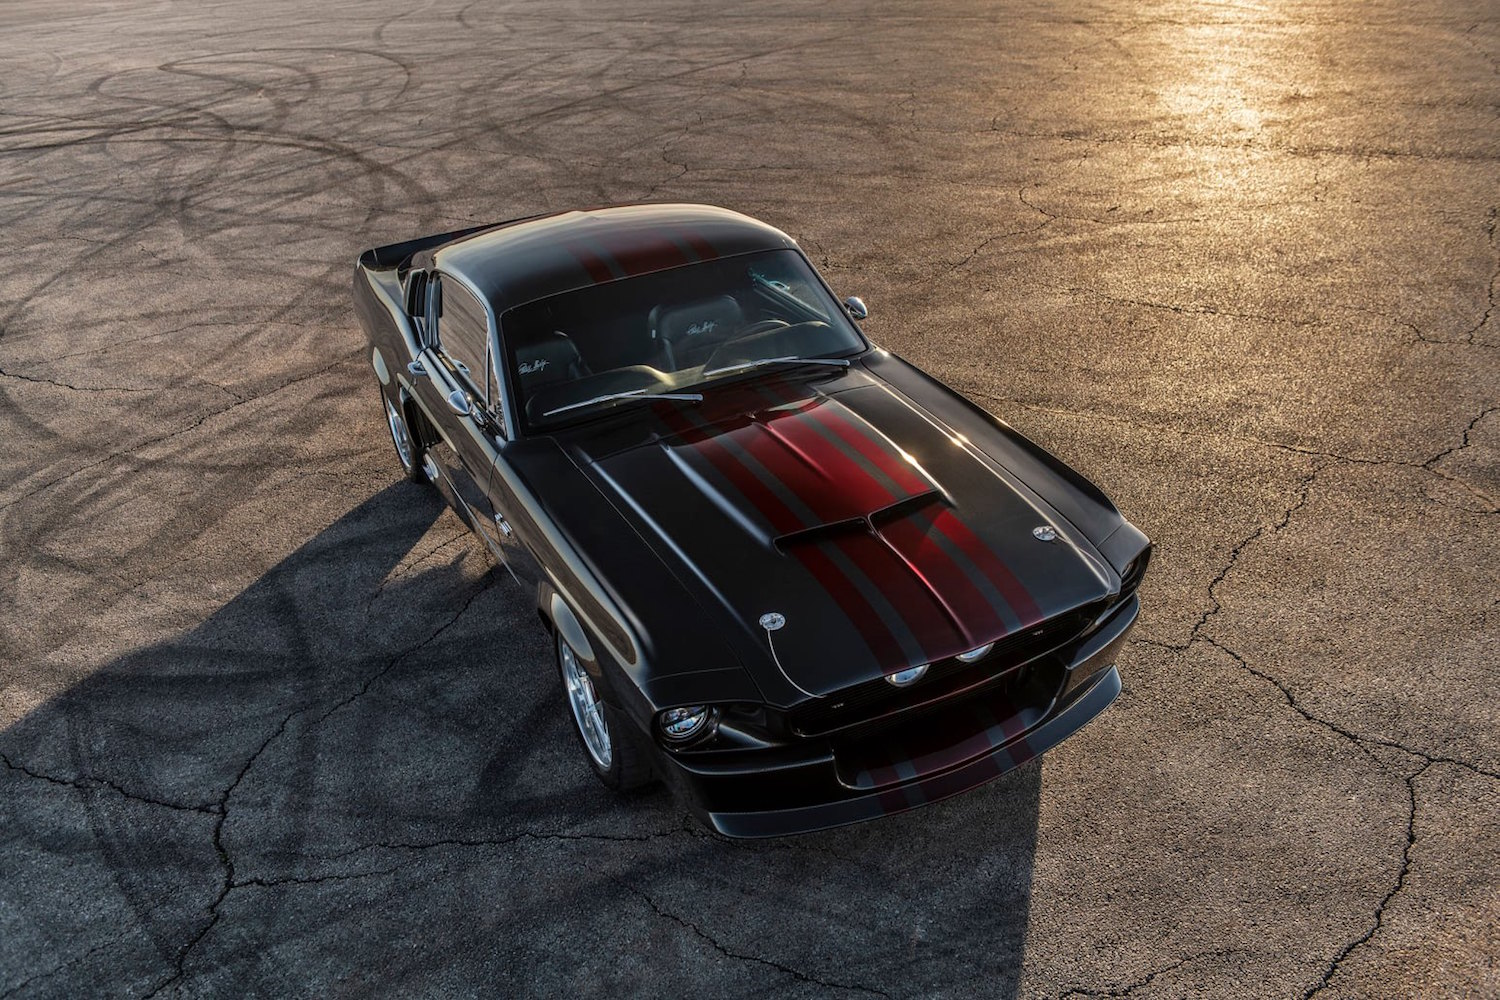 Classic Recreations Shelby GT500CR is a Carbon bodied Ford Mustang Restomod